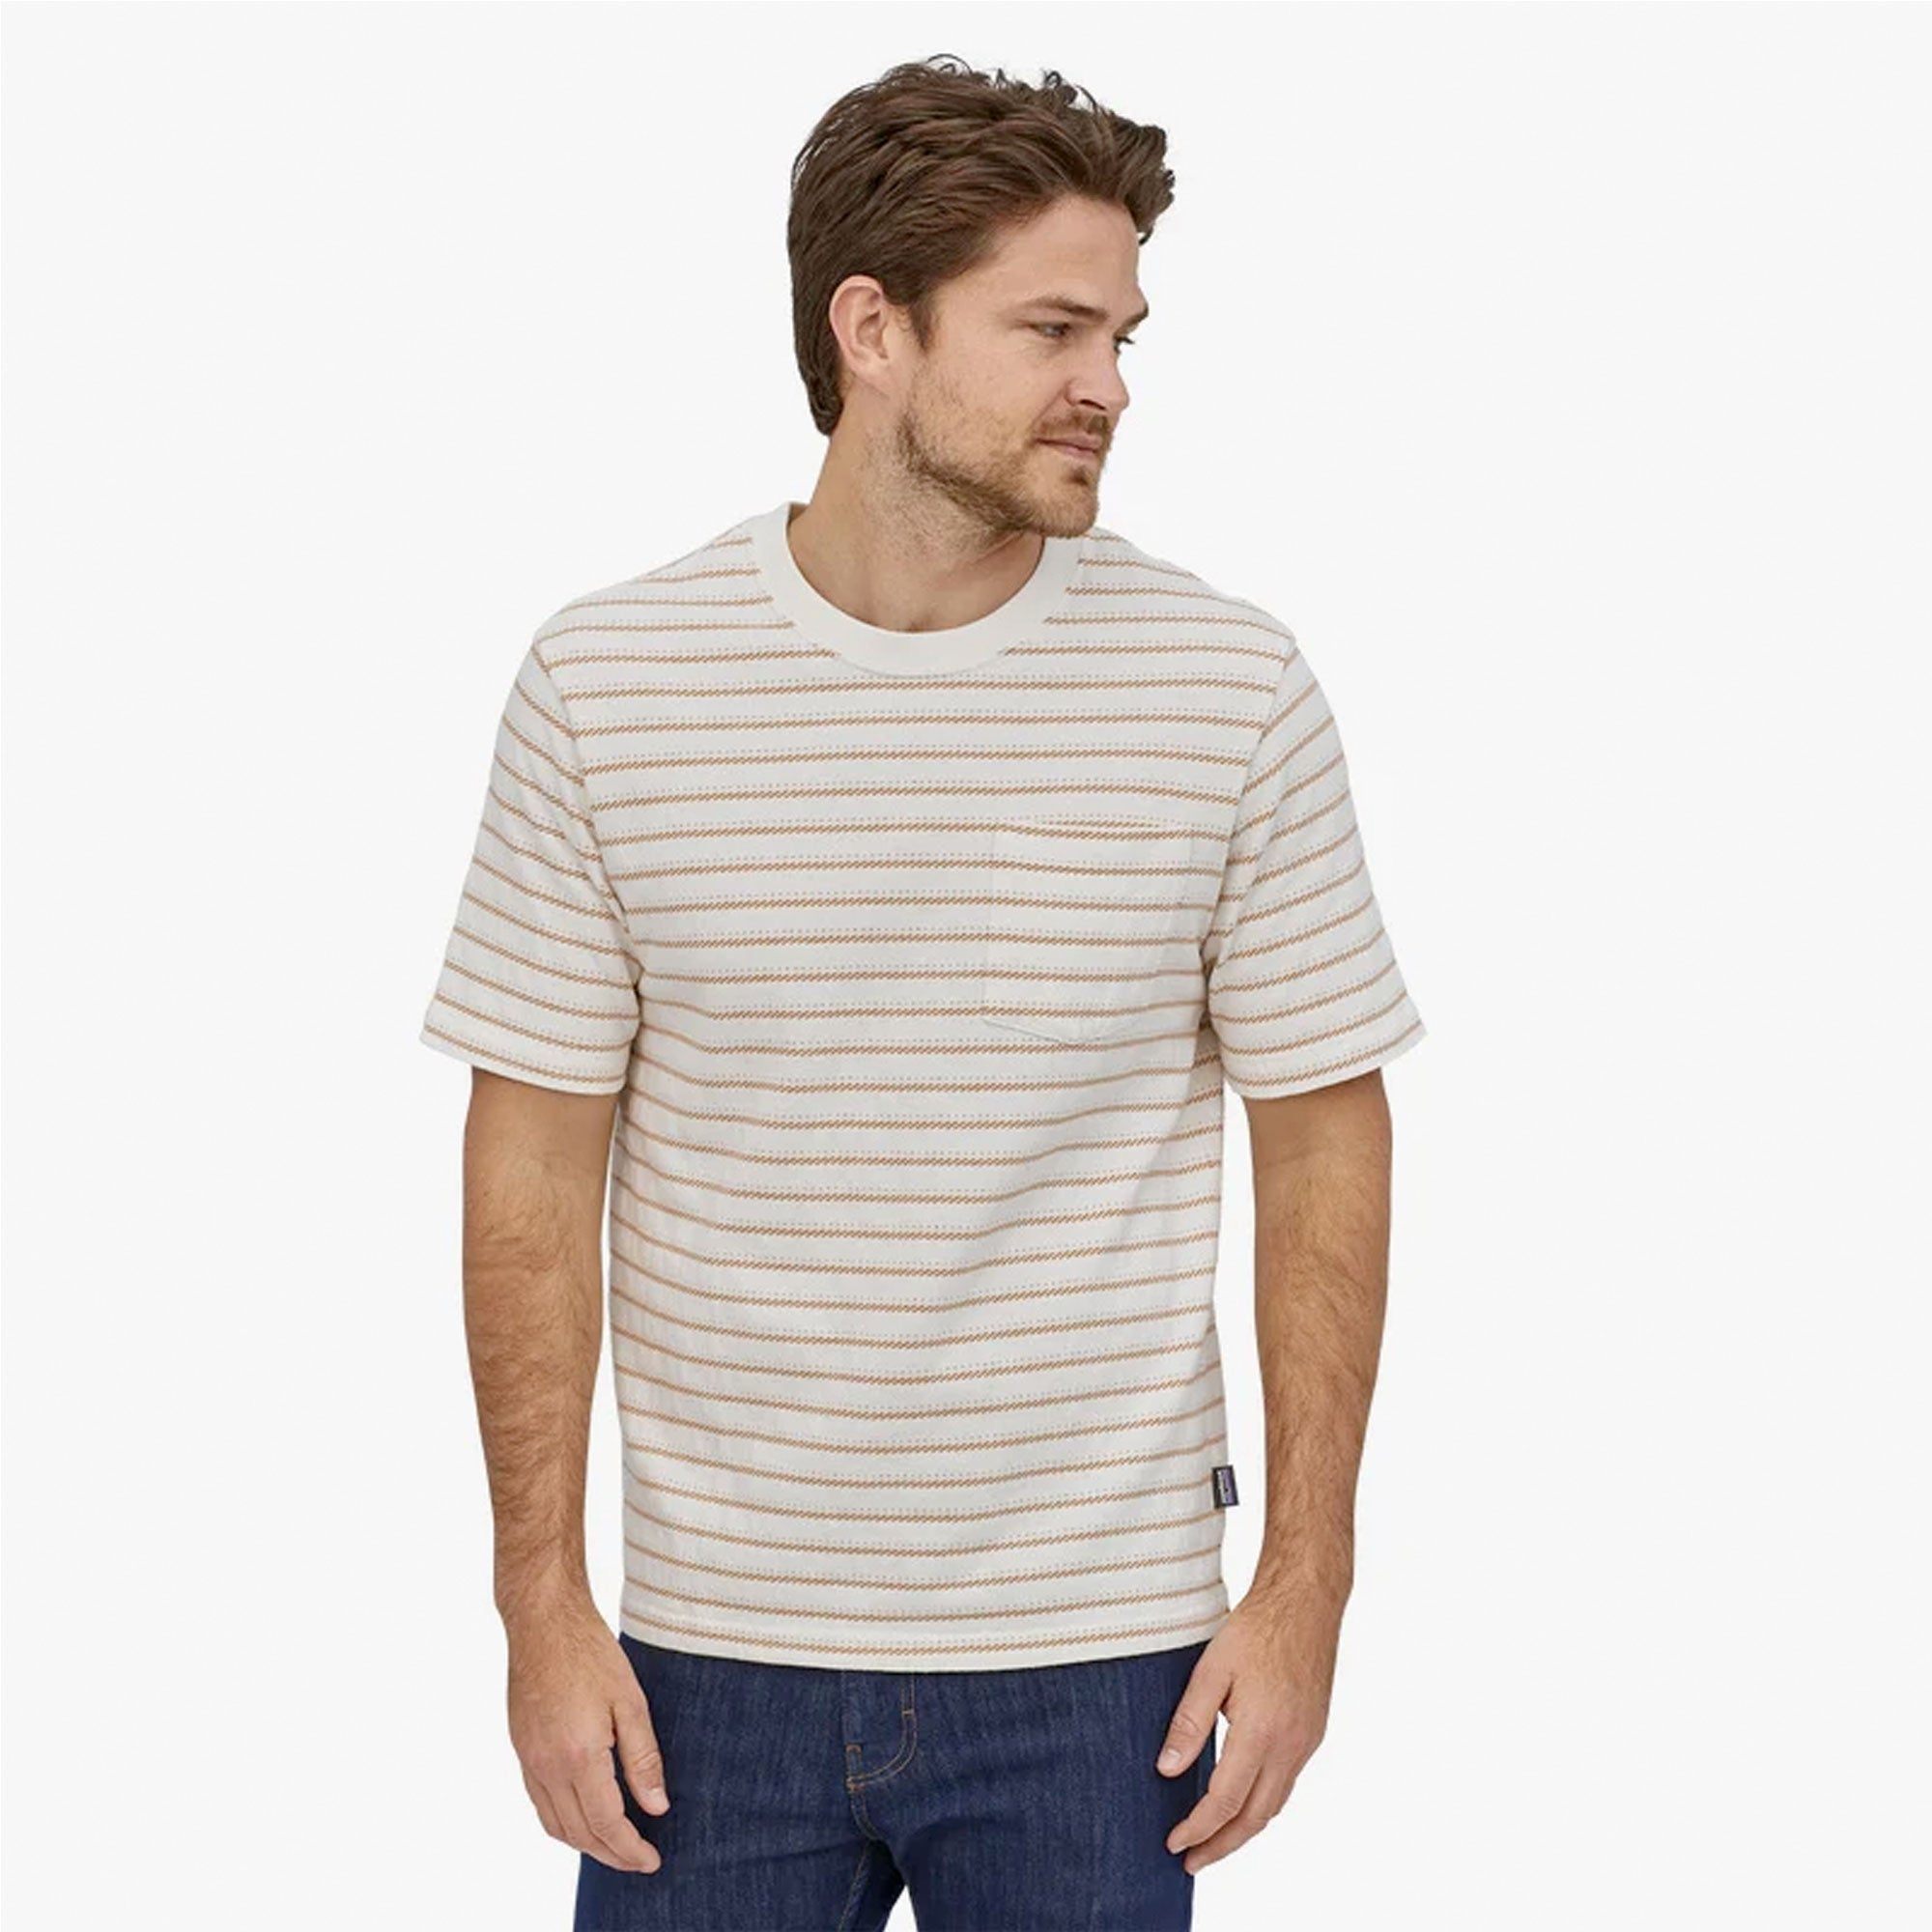 Patagonia Organic Cotton Mid-Weight Men's Pocket Tee